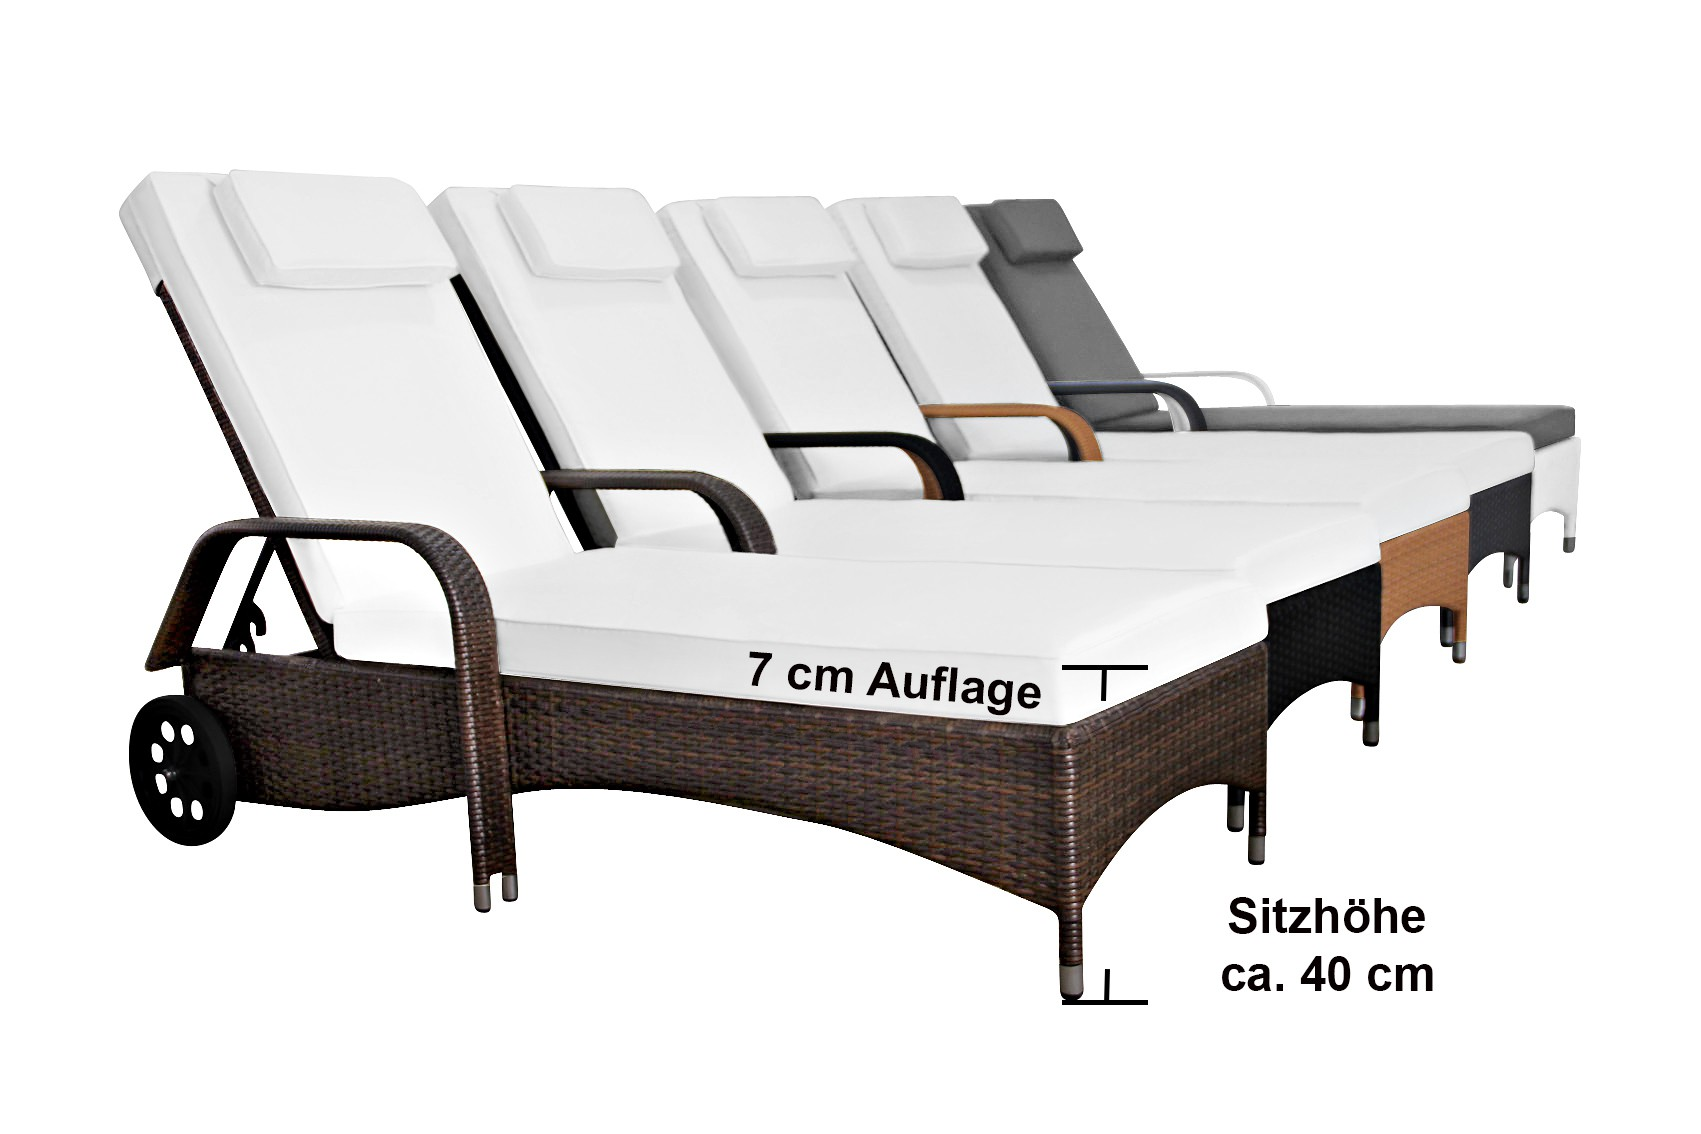 sonnenliege toscana farbe java braun gartenm bel rattan sonnenliegen. Black Bedroom Furniture Sets. Home Design Ideas